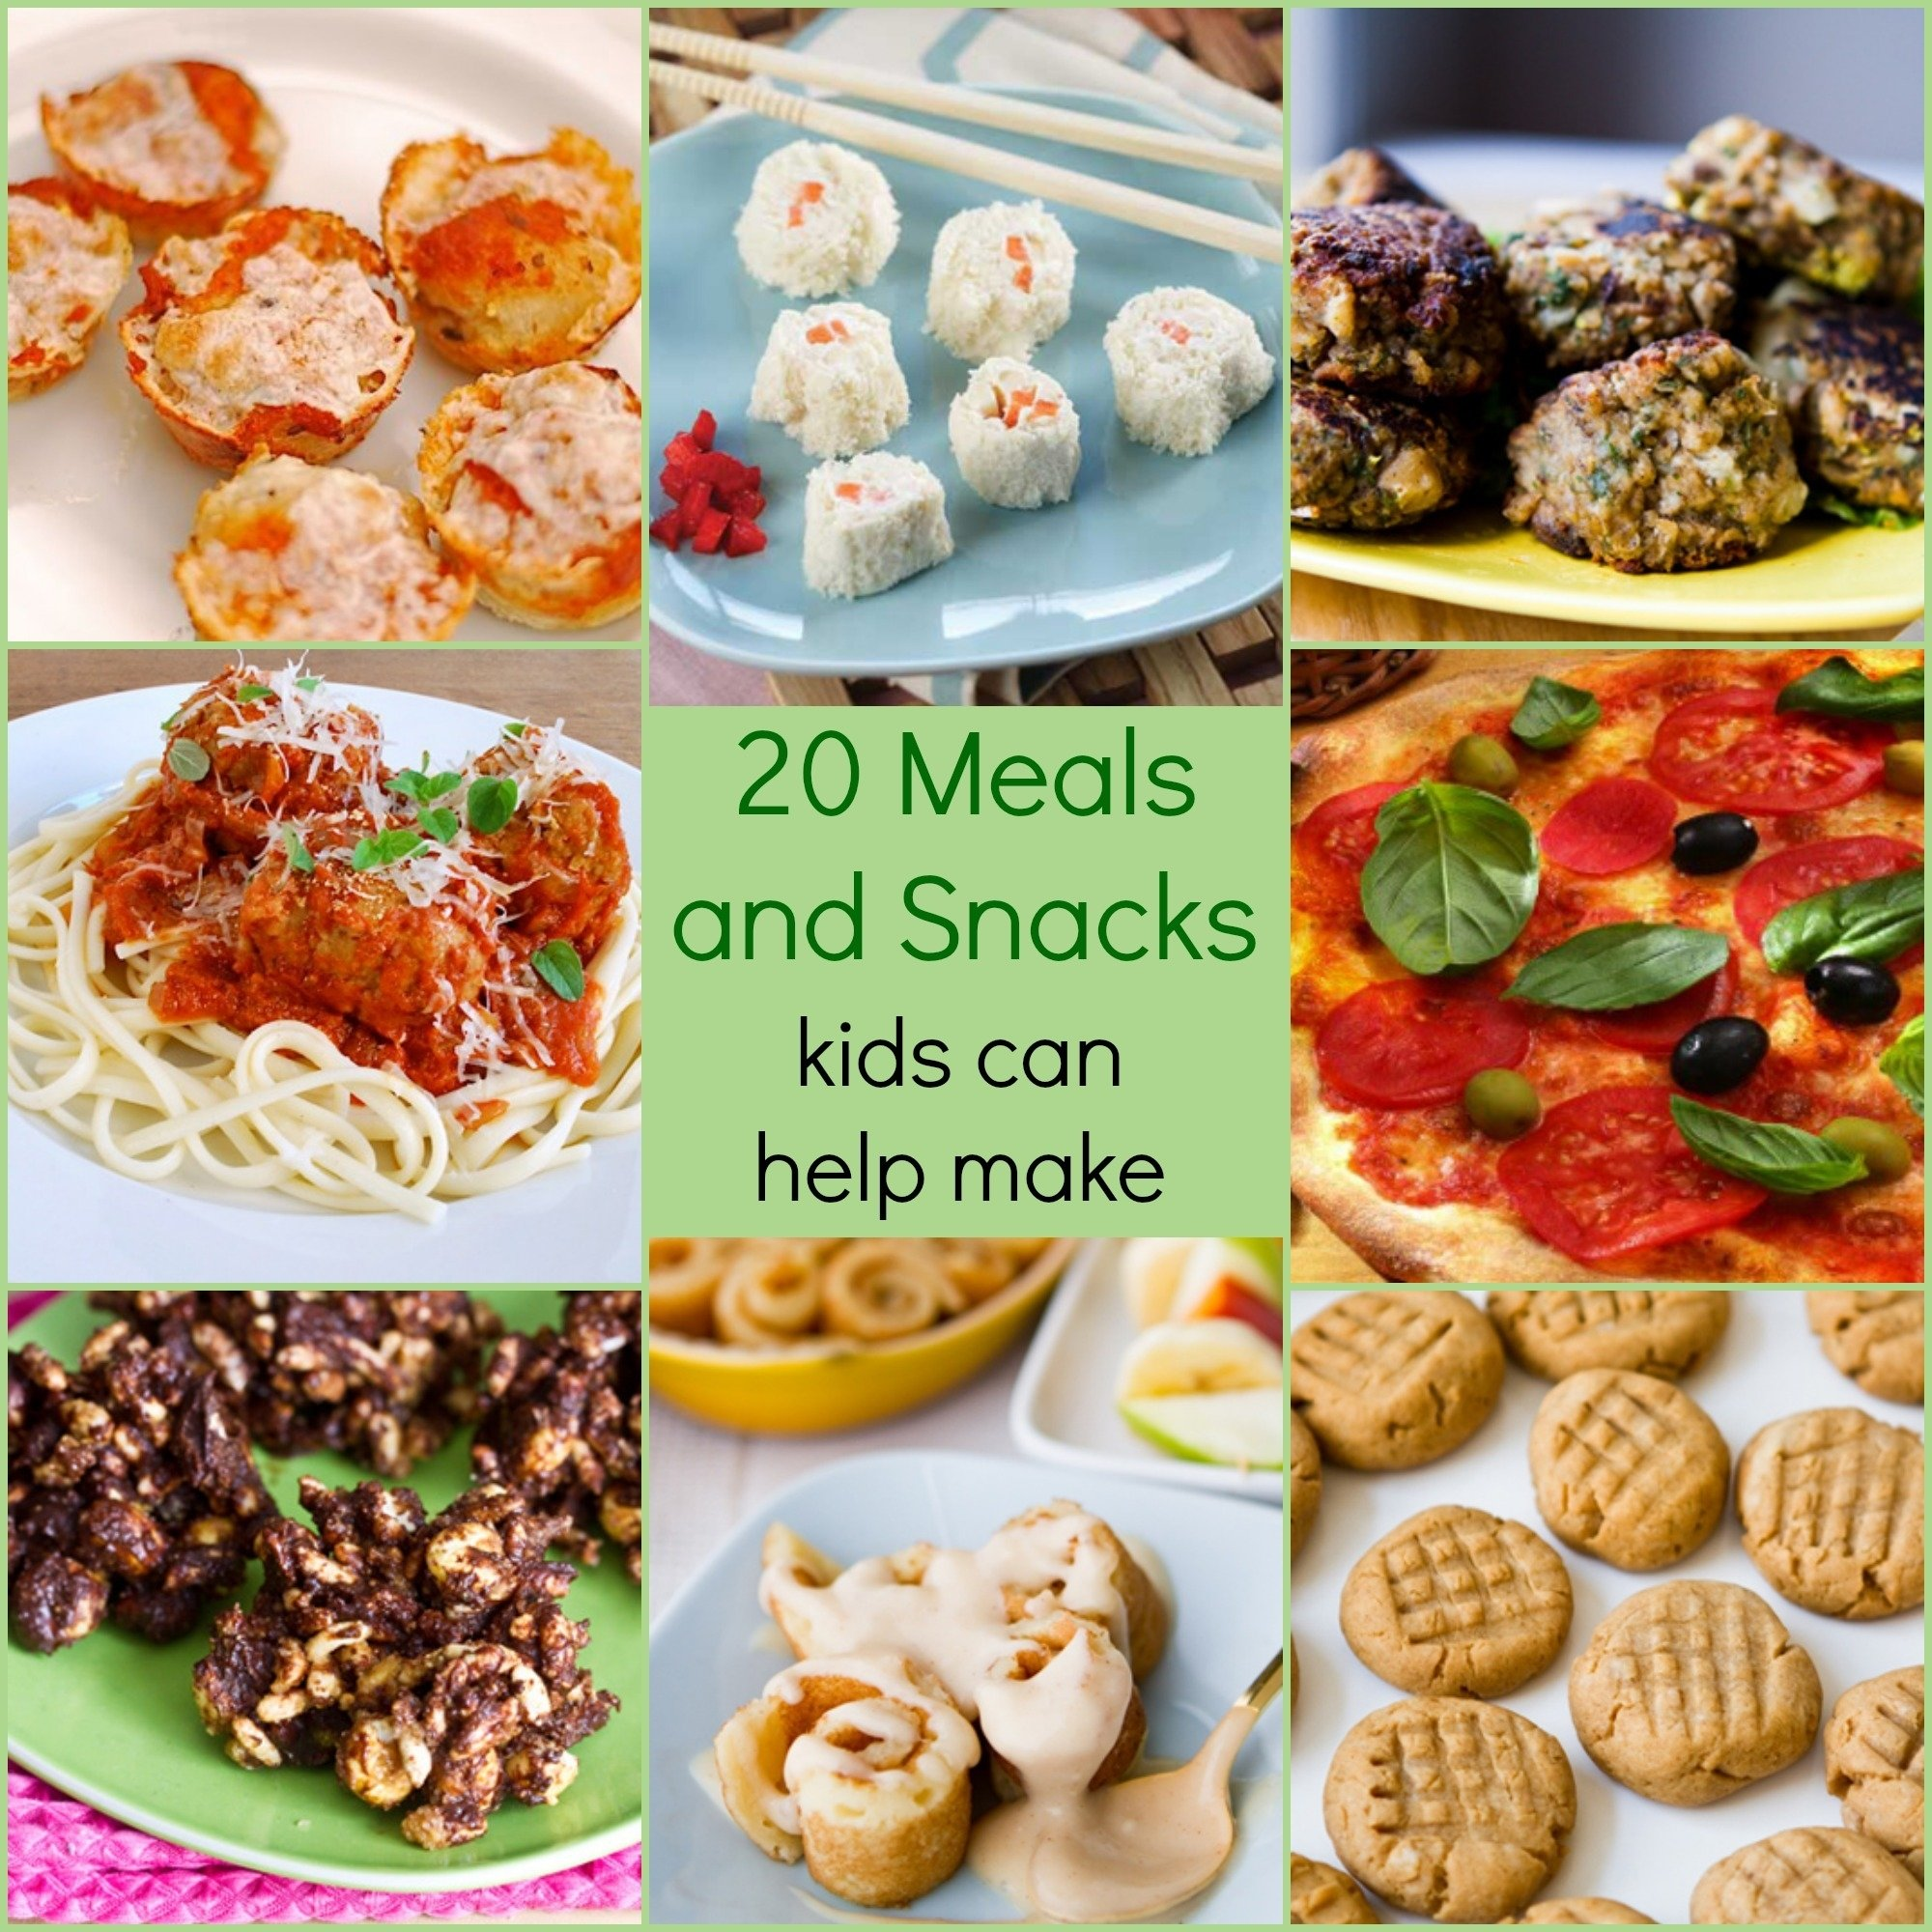 10 Stylish Easy Meal Ideas For Toddlers 20 meals and snacks kids can help make 3 2020